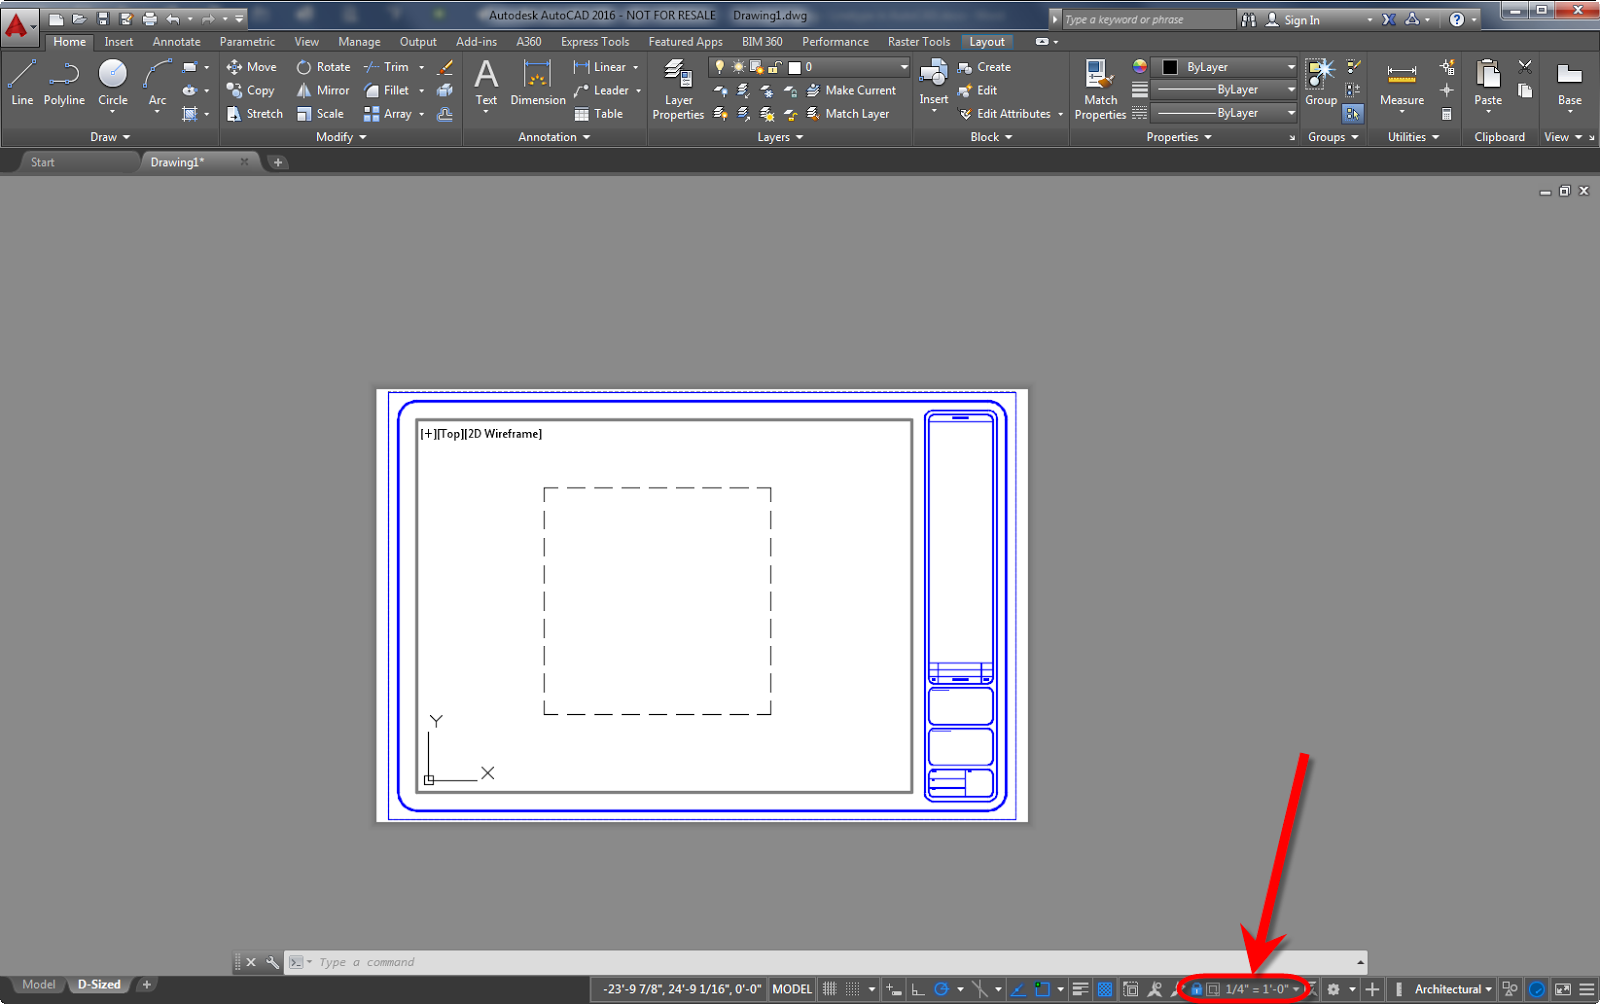 acad paper Autocad model space and paper space layout view - free download as word doc (doc / docx), pdf file (pdf), text file (txt) or read online for free.